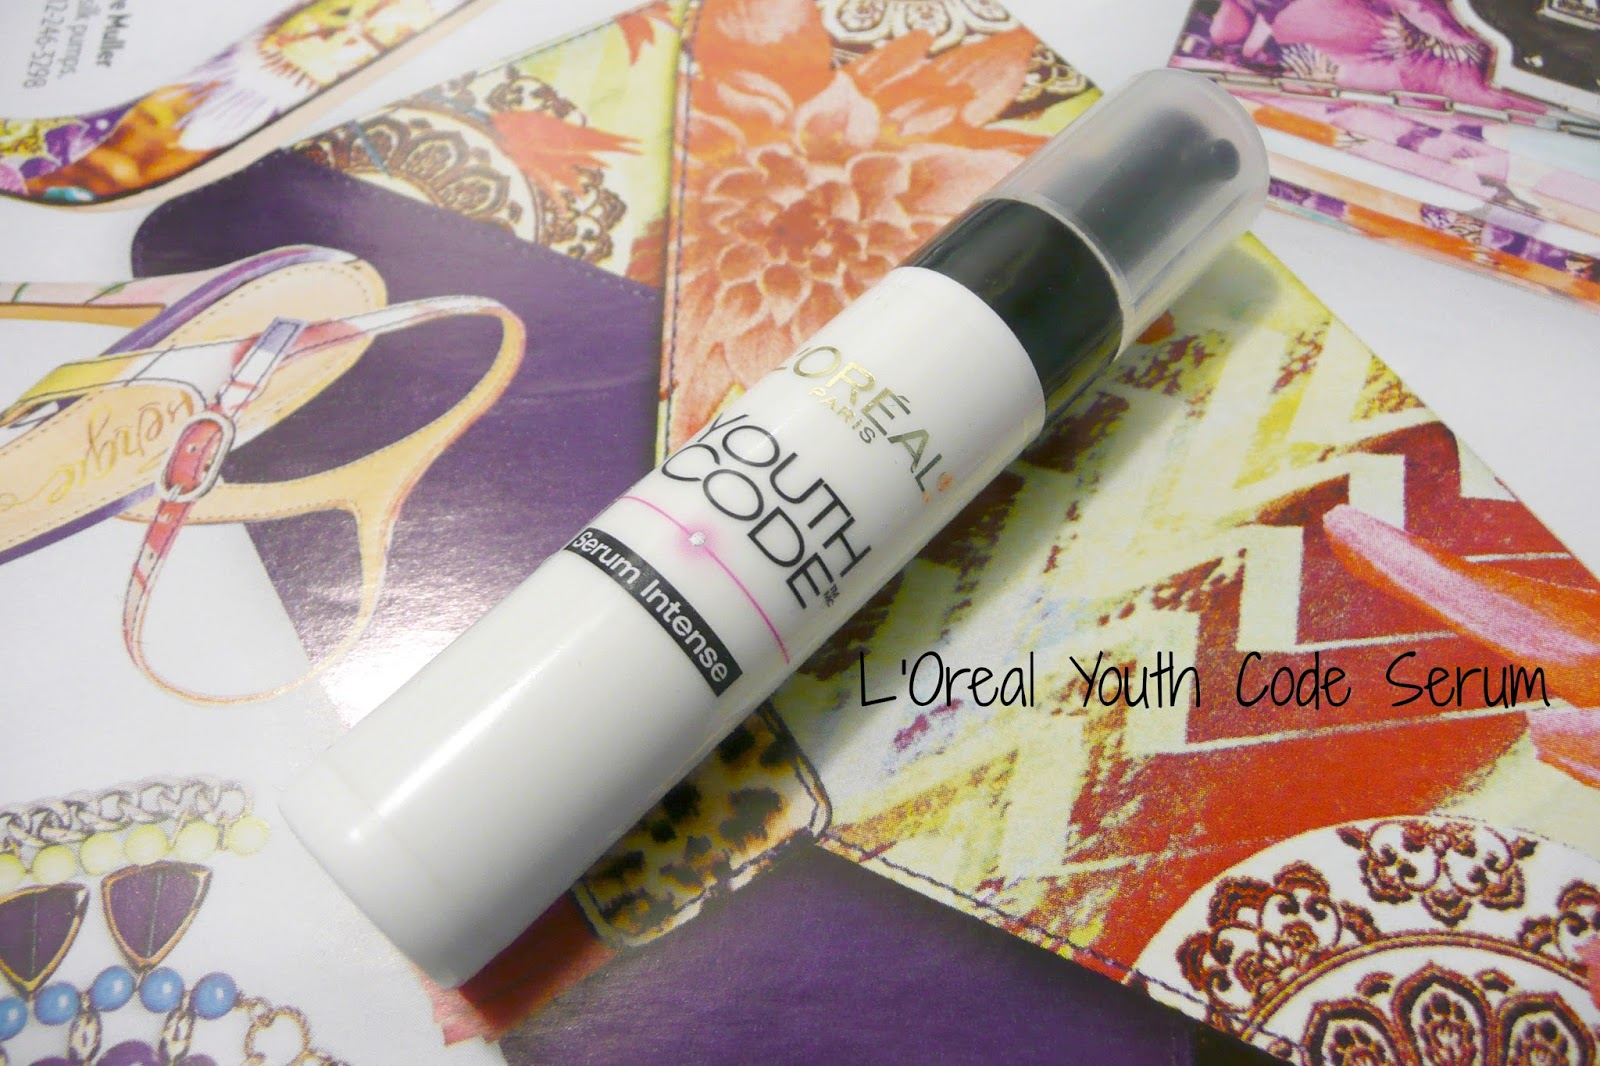 L'Oreal Youth Code Serum Review